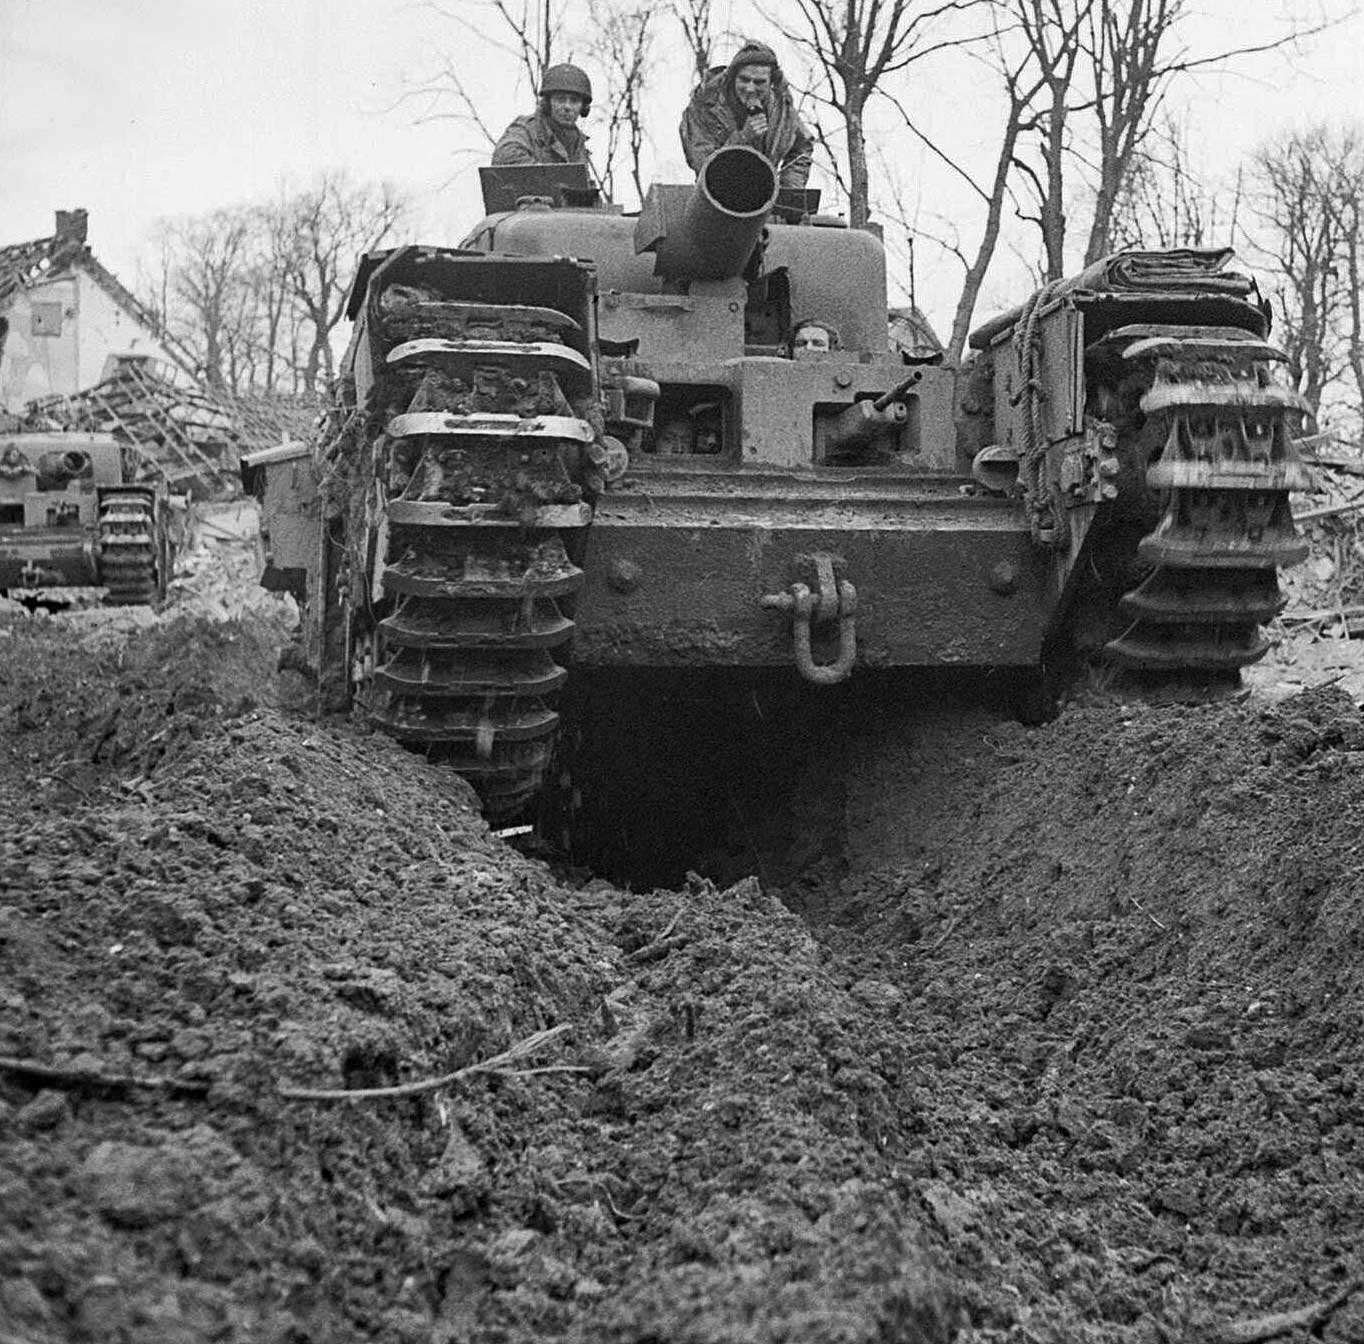 1945 - Operation Veritable. A Churchill AVRE with a 290 mm petard mortar, ploughing through mud